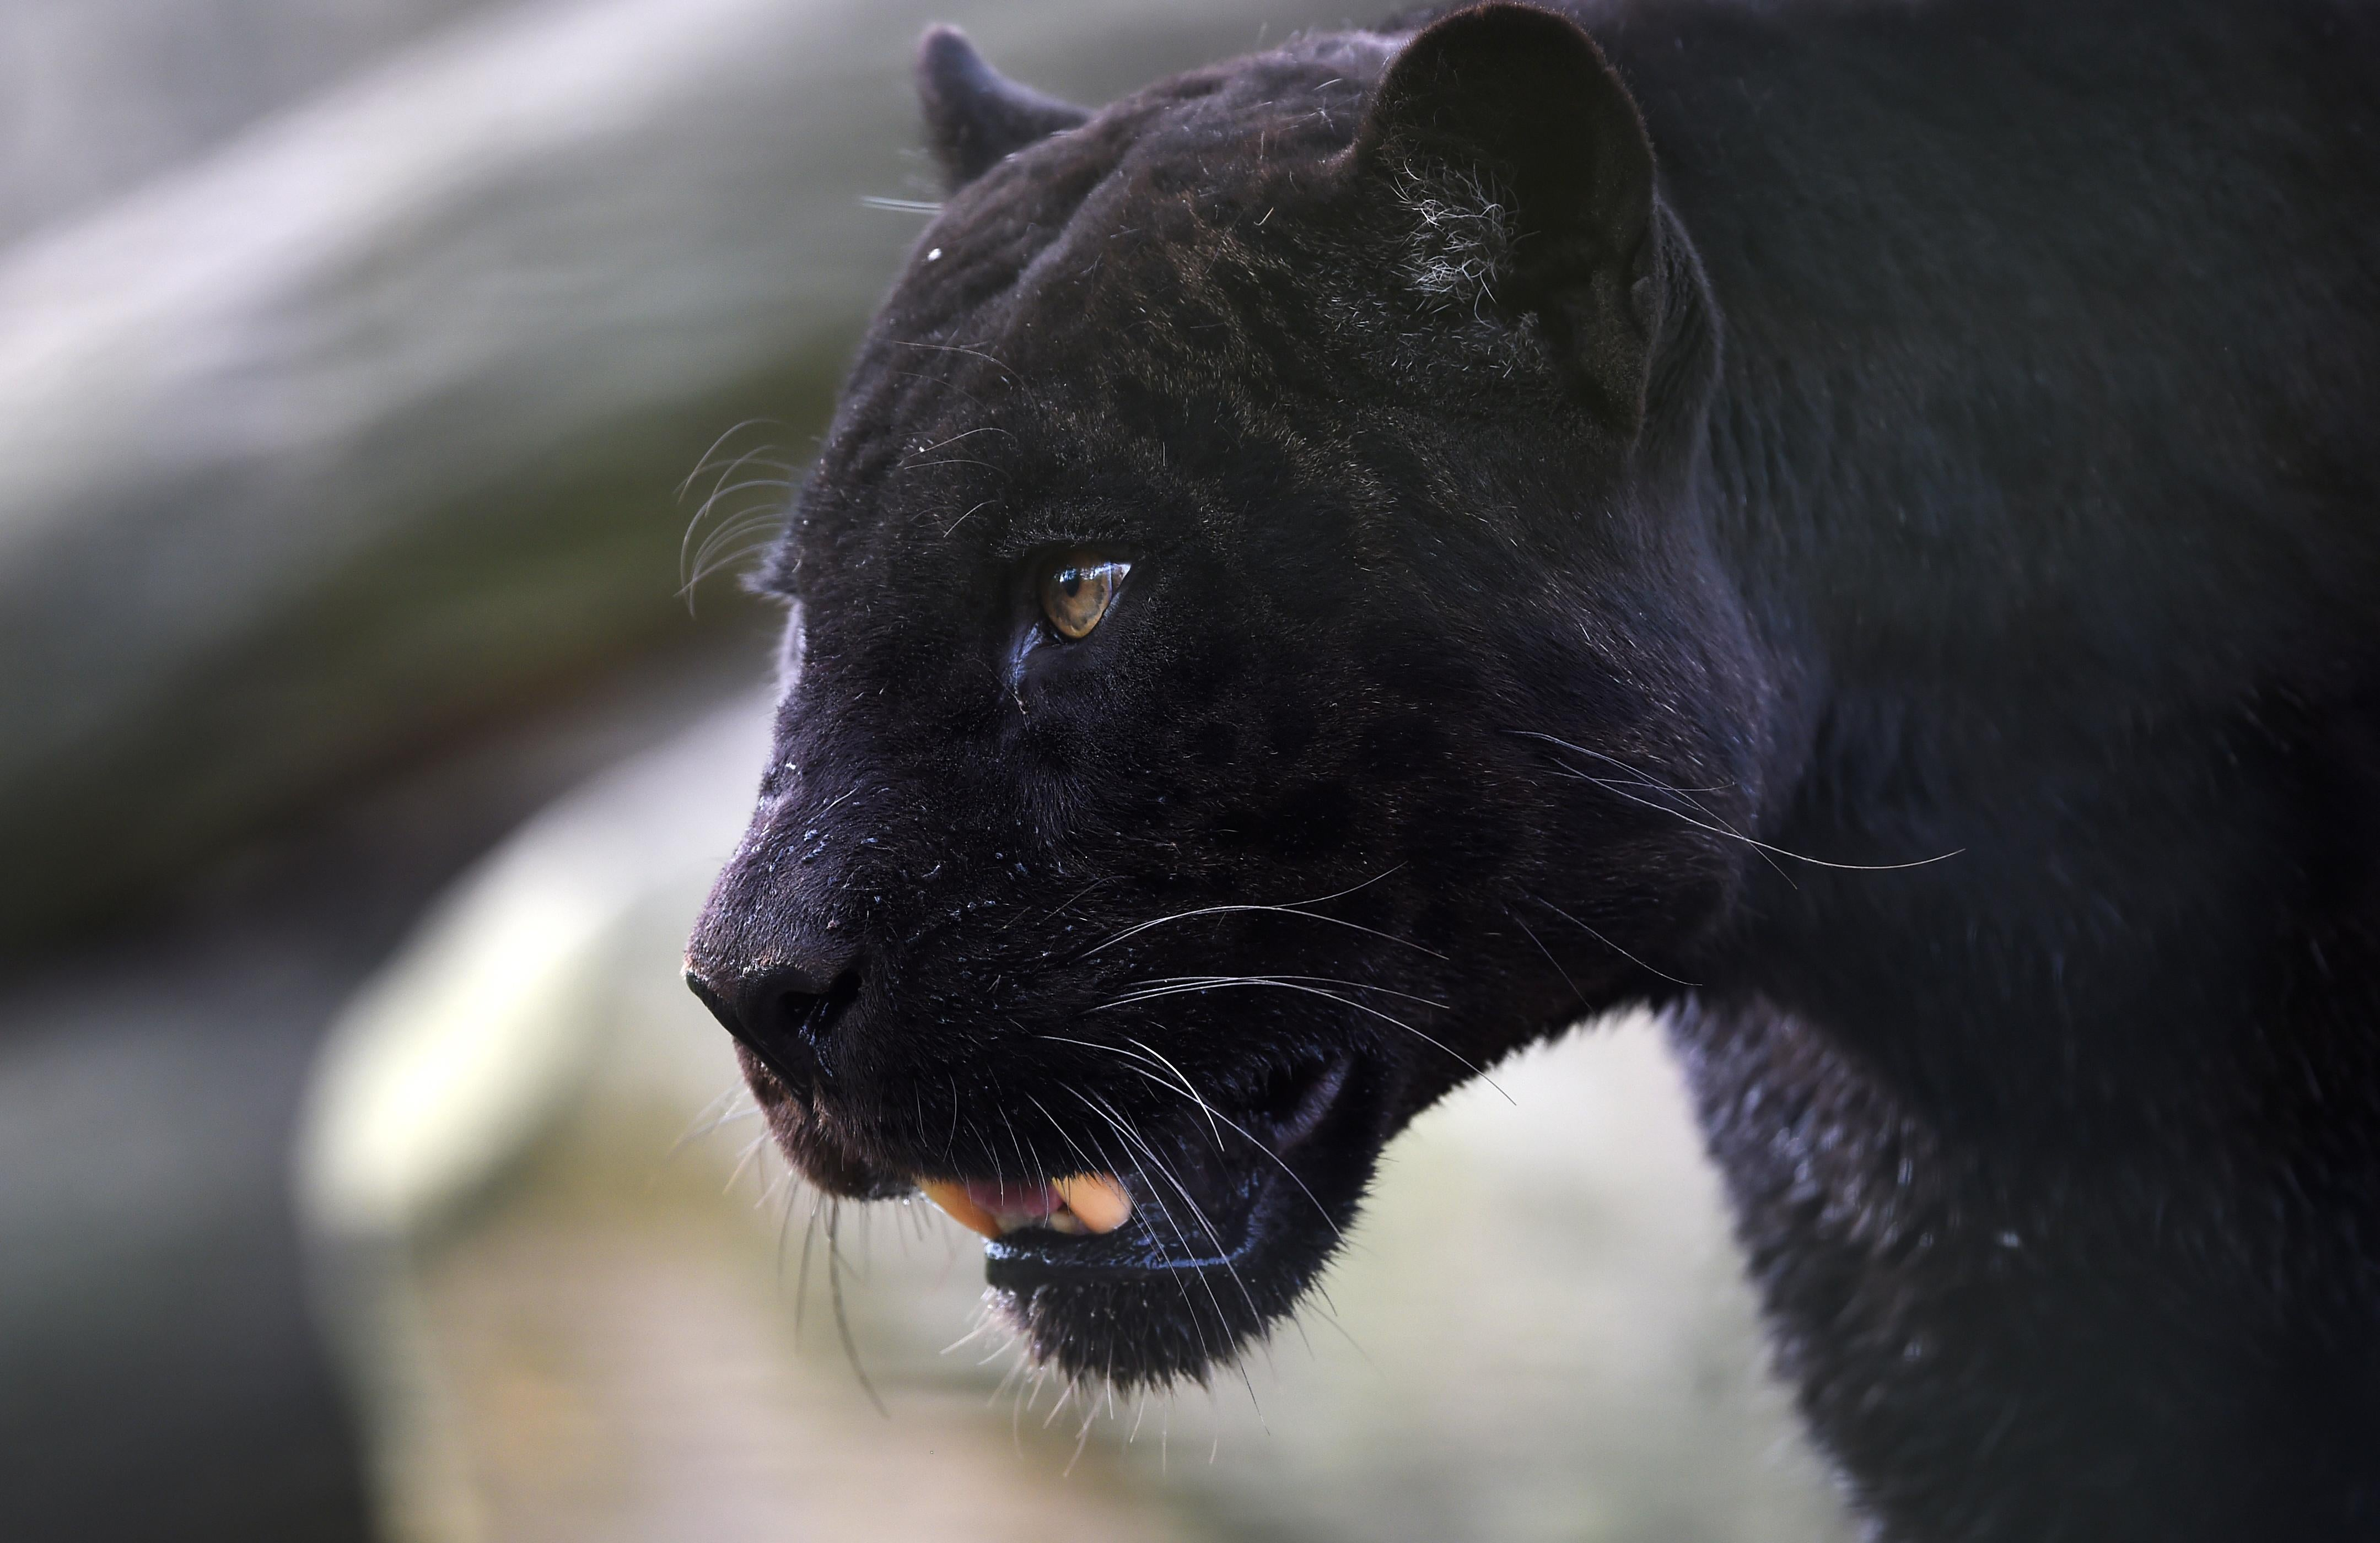 A black panther.